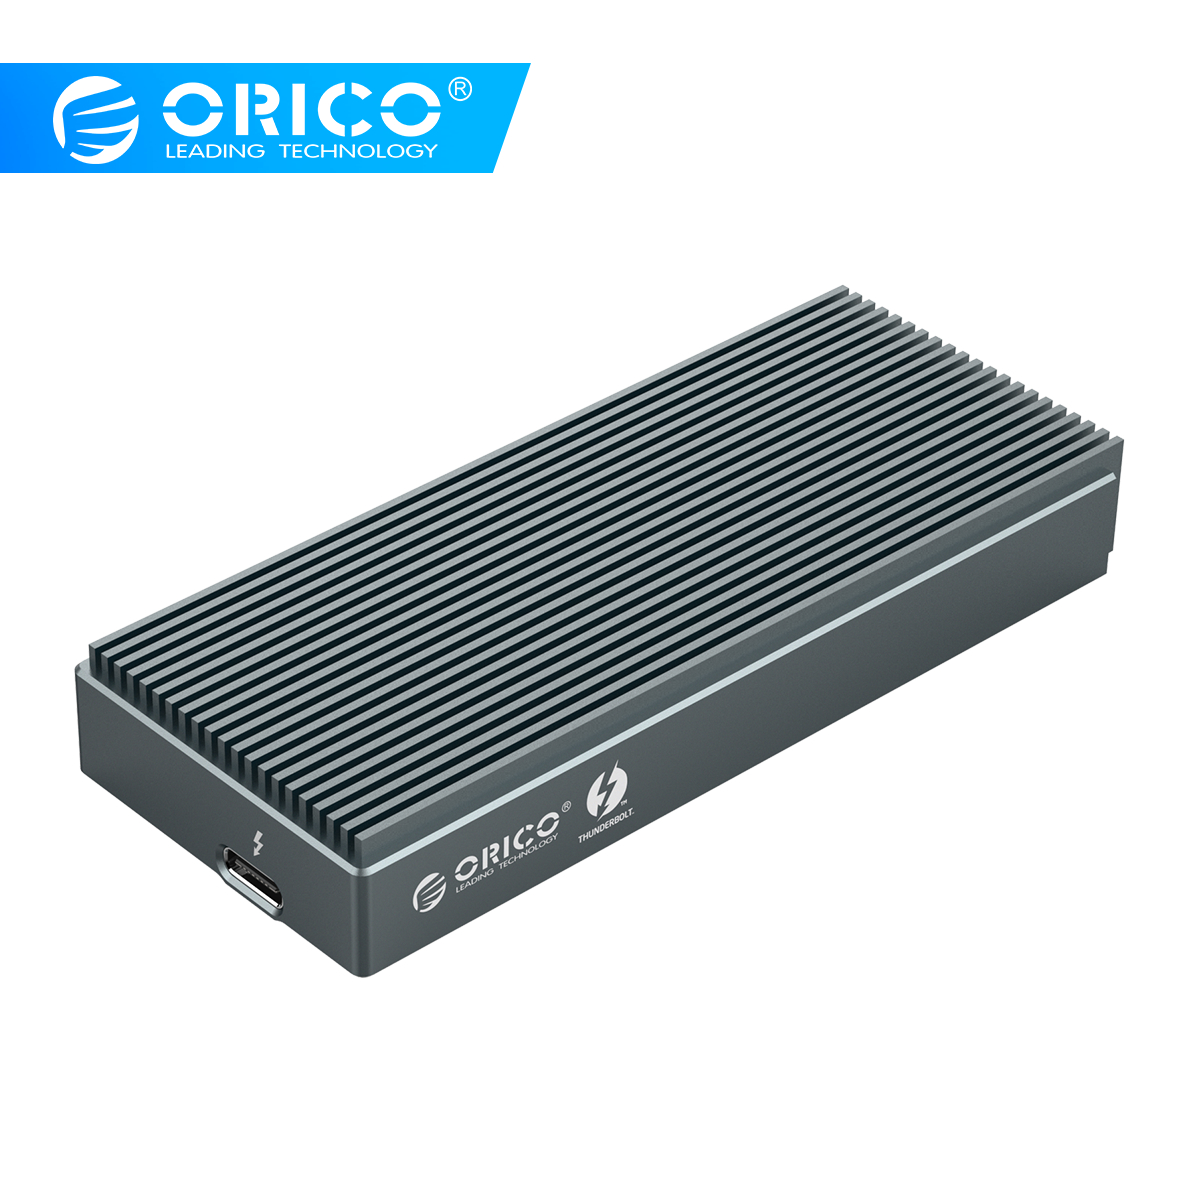 ORICO Thunderbolt 3 SSD Case NVME M.2 SSD Enclosure 2TB Aluminum USB C With 40Gbps Thunderbolt 3 C To C Cable For Laptop Desktop